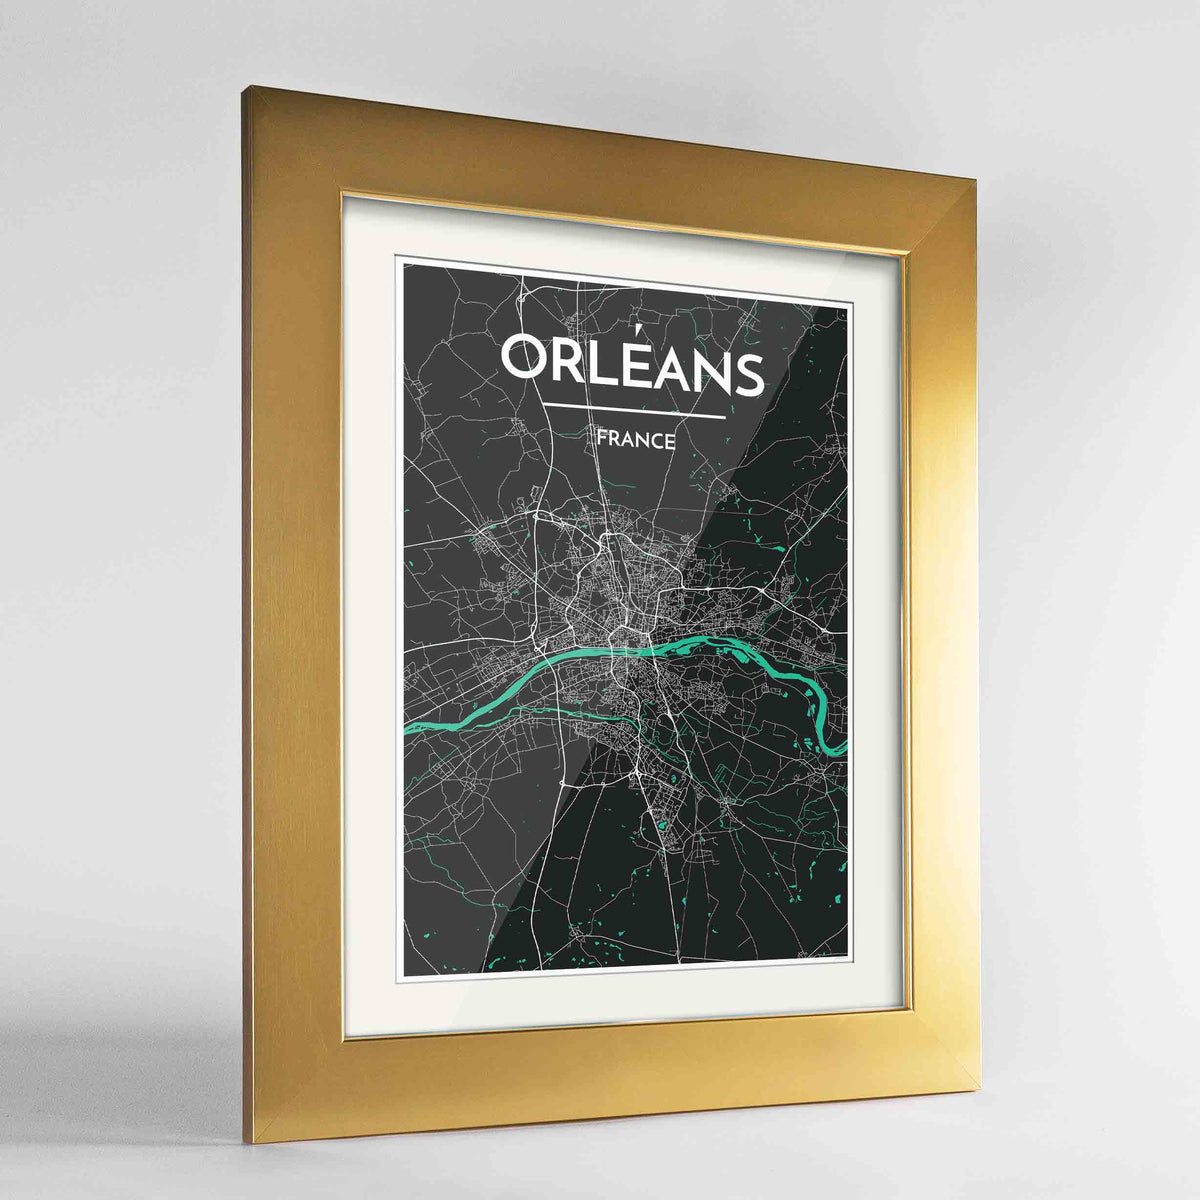 "Framed Orleans Map Art Print 24x36"" Gold frame Point Two Design Group"